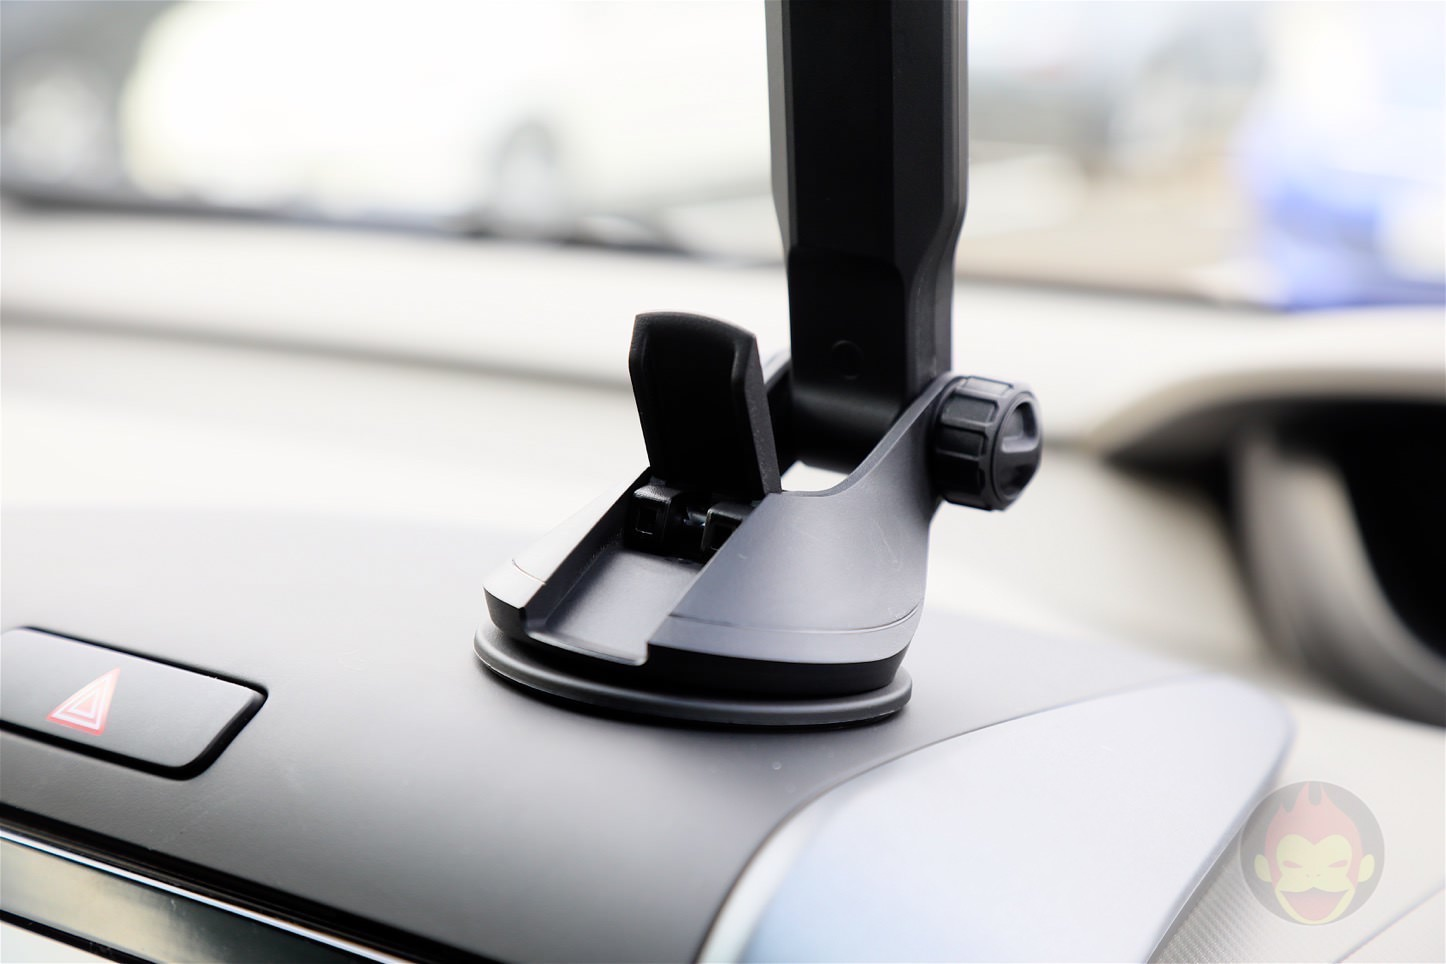 Spigen-AP12T-Car-Mount-13.jpg